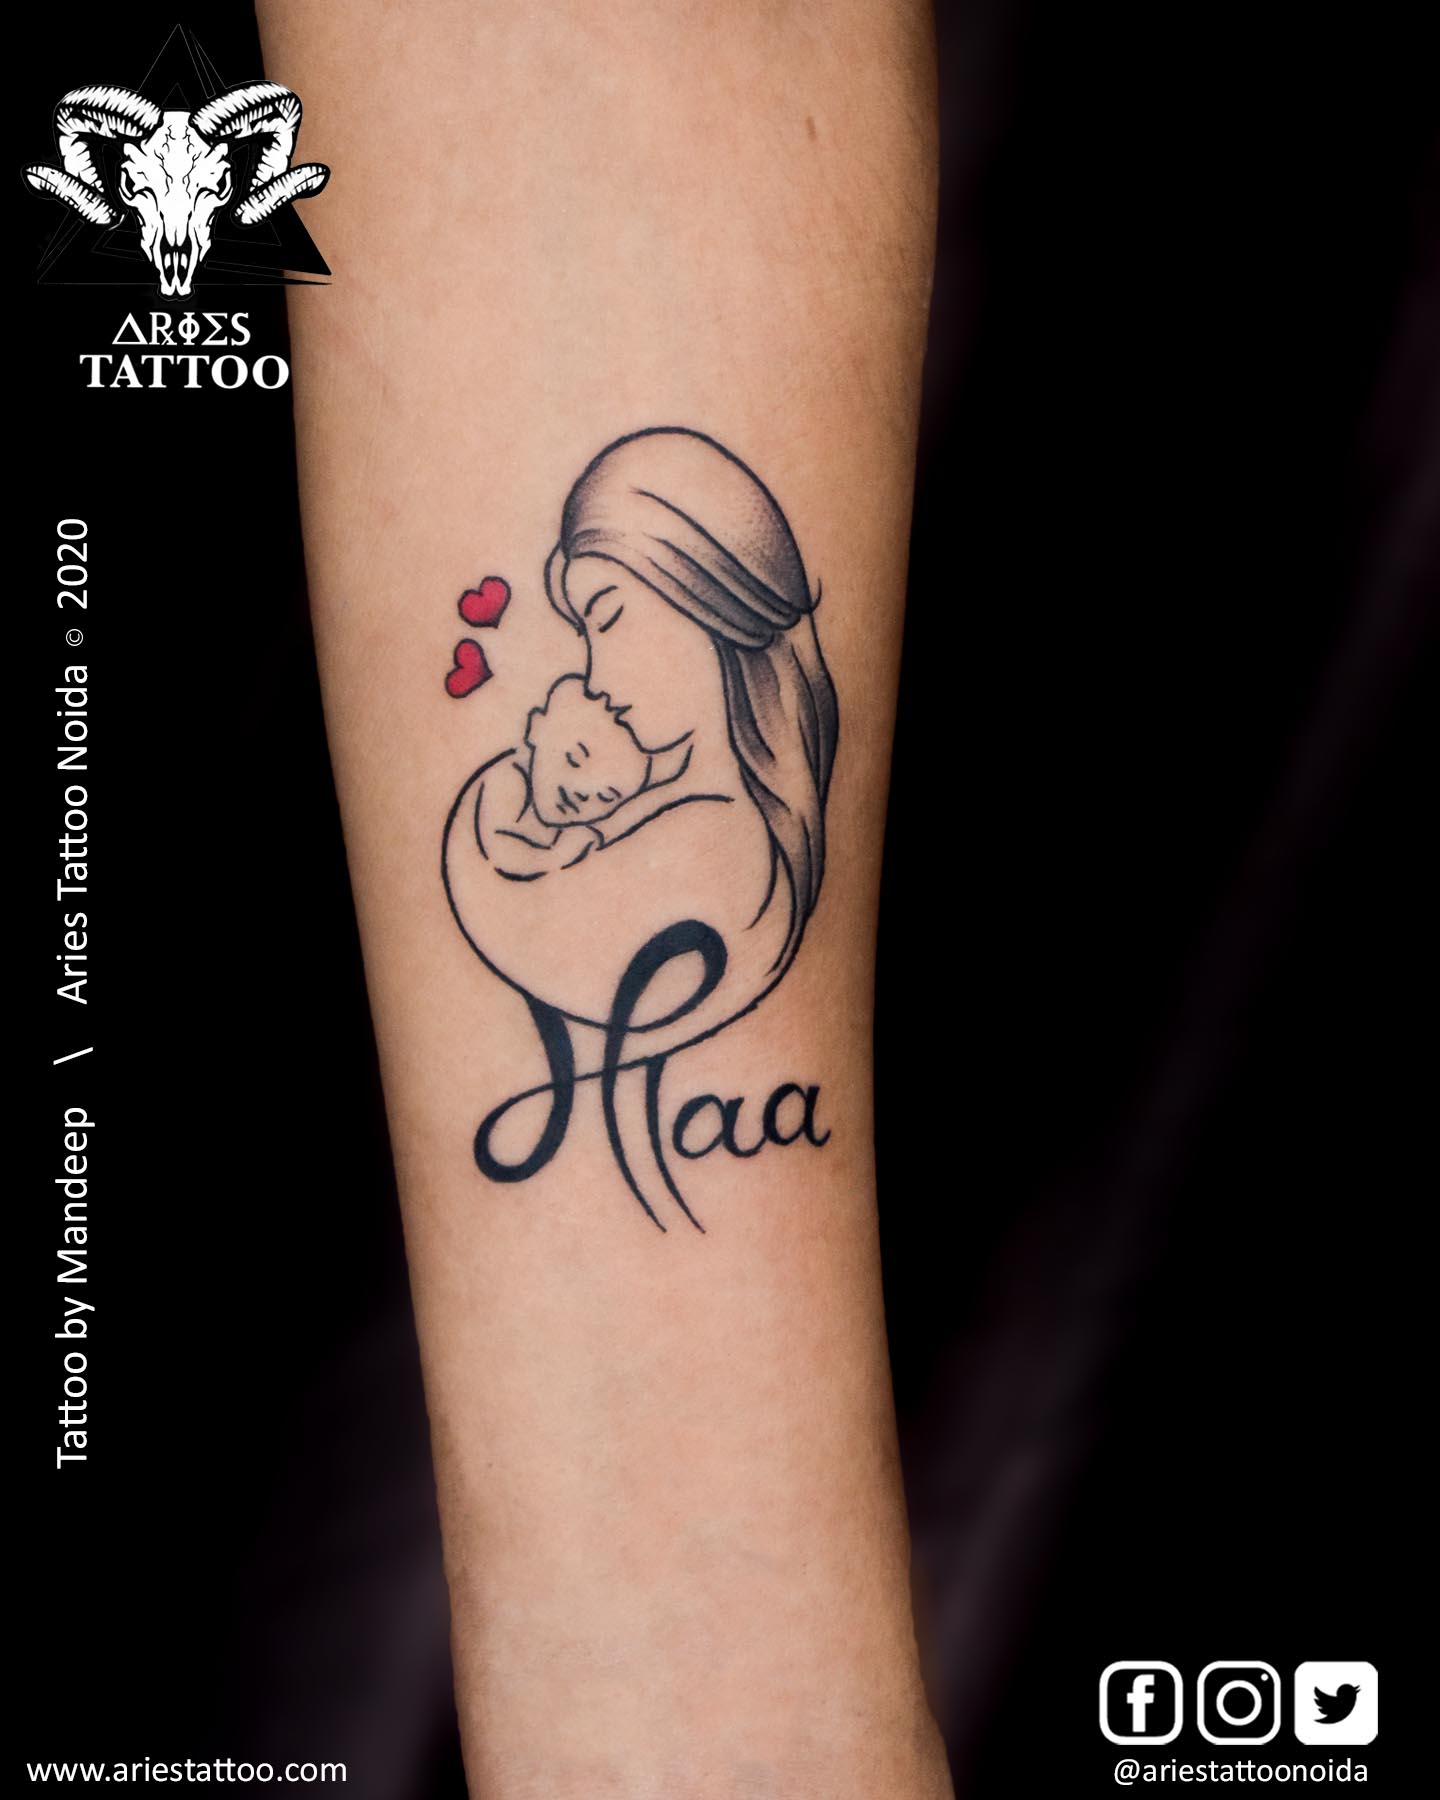 maa paa tattoo_Mandeep_|Aries Tattoo Noida | Tattoo Shop and Studio In Noida